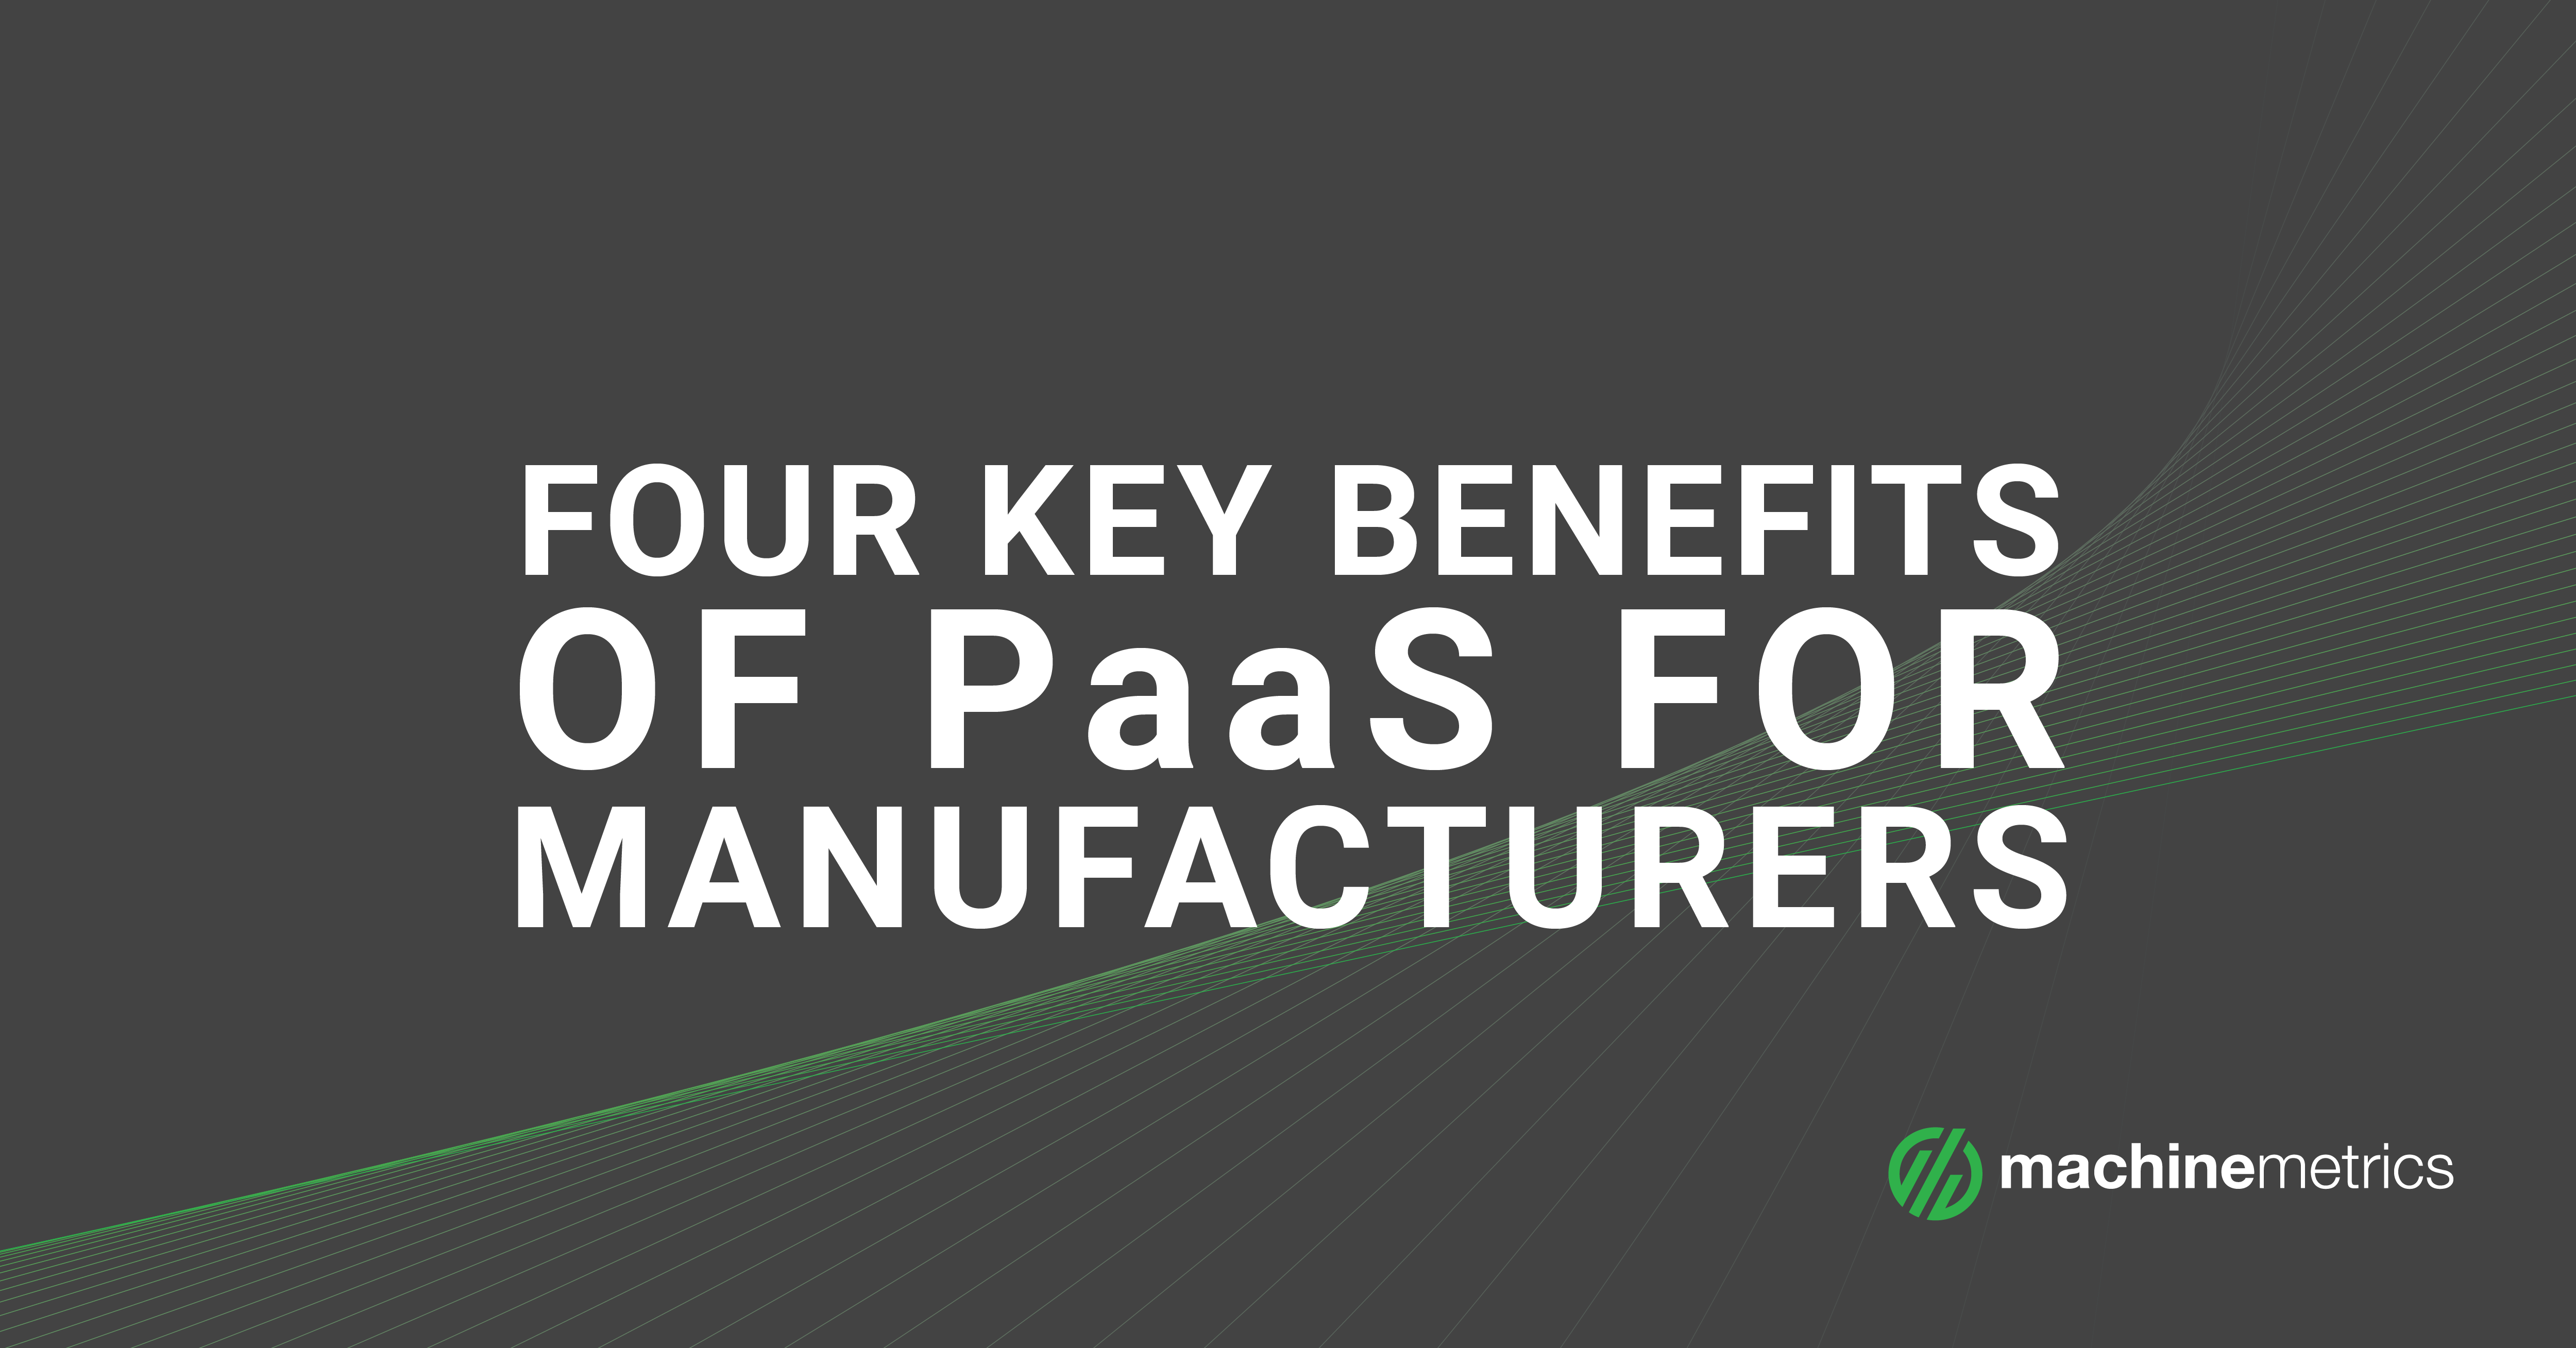 Four Key Benefits of PaaS for Manufacturers